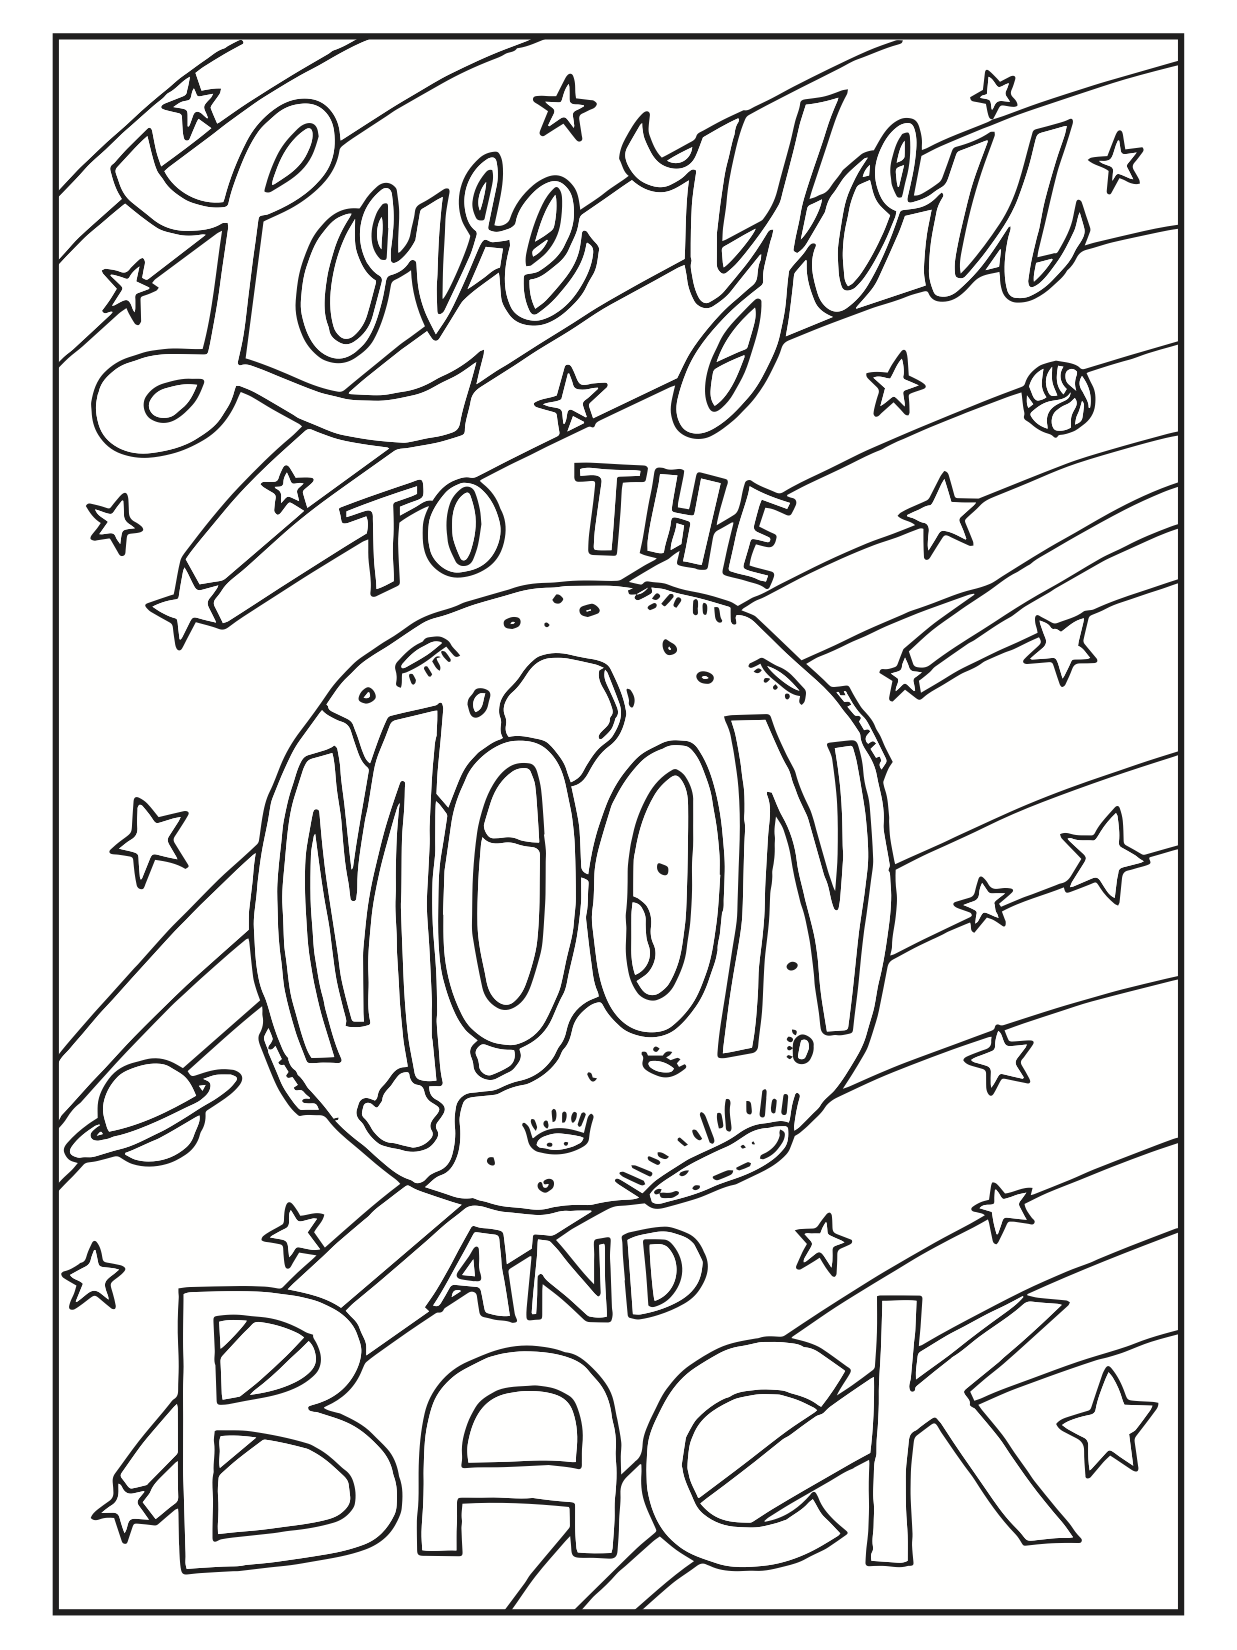 Choose from a variety of free coloring pages from our coloring book creative quotes freeprintable nationalcoloringbookday loveyou moonandback